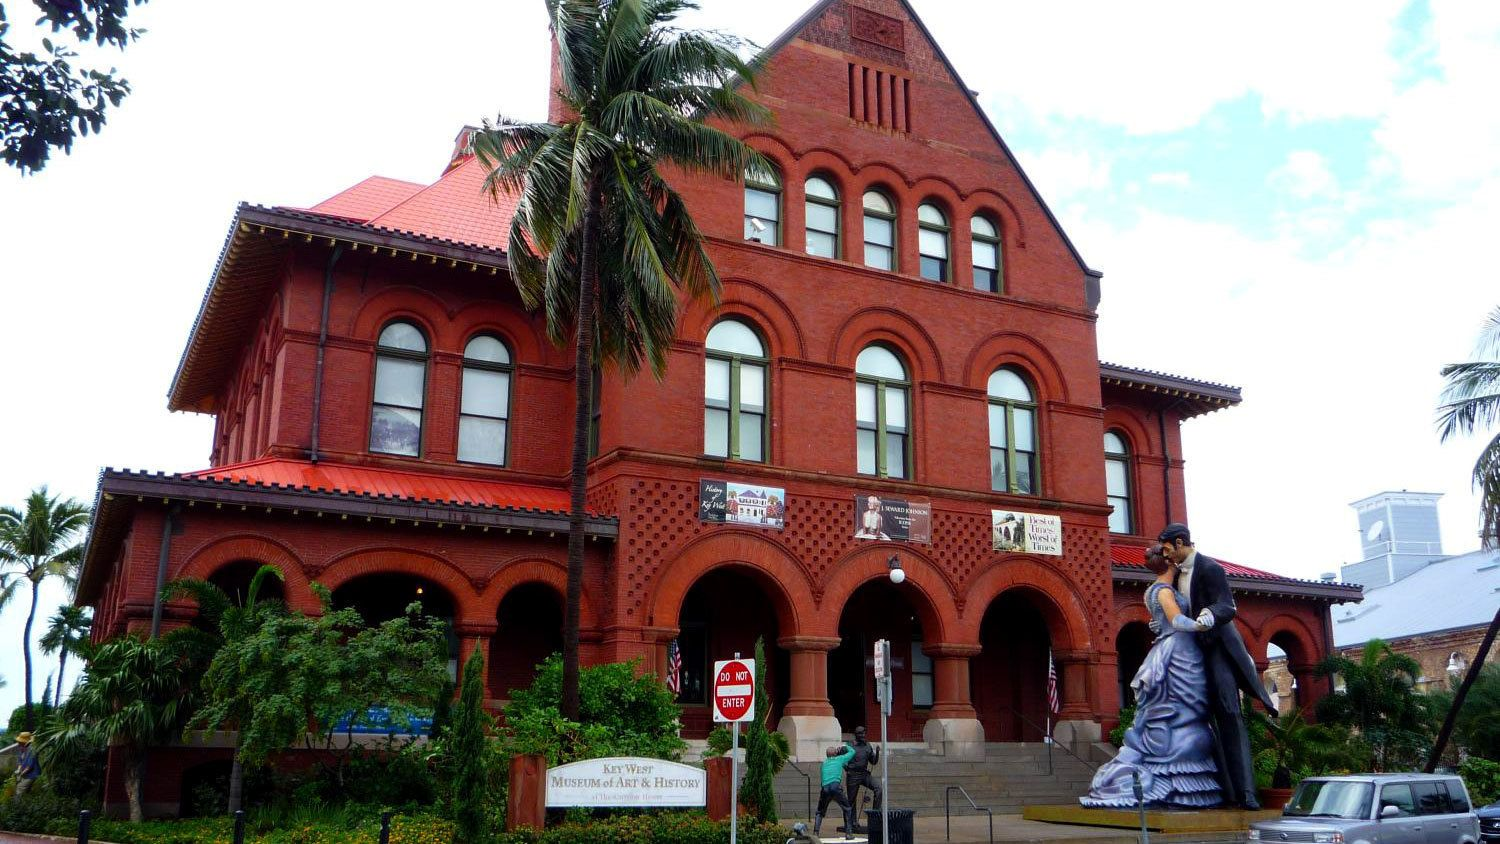 Outside the Key West Museum of Art and History